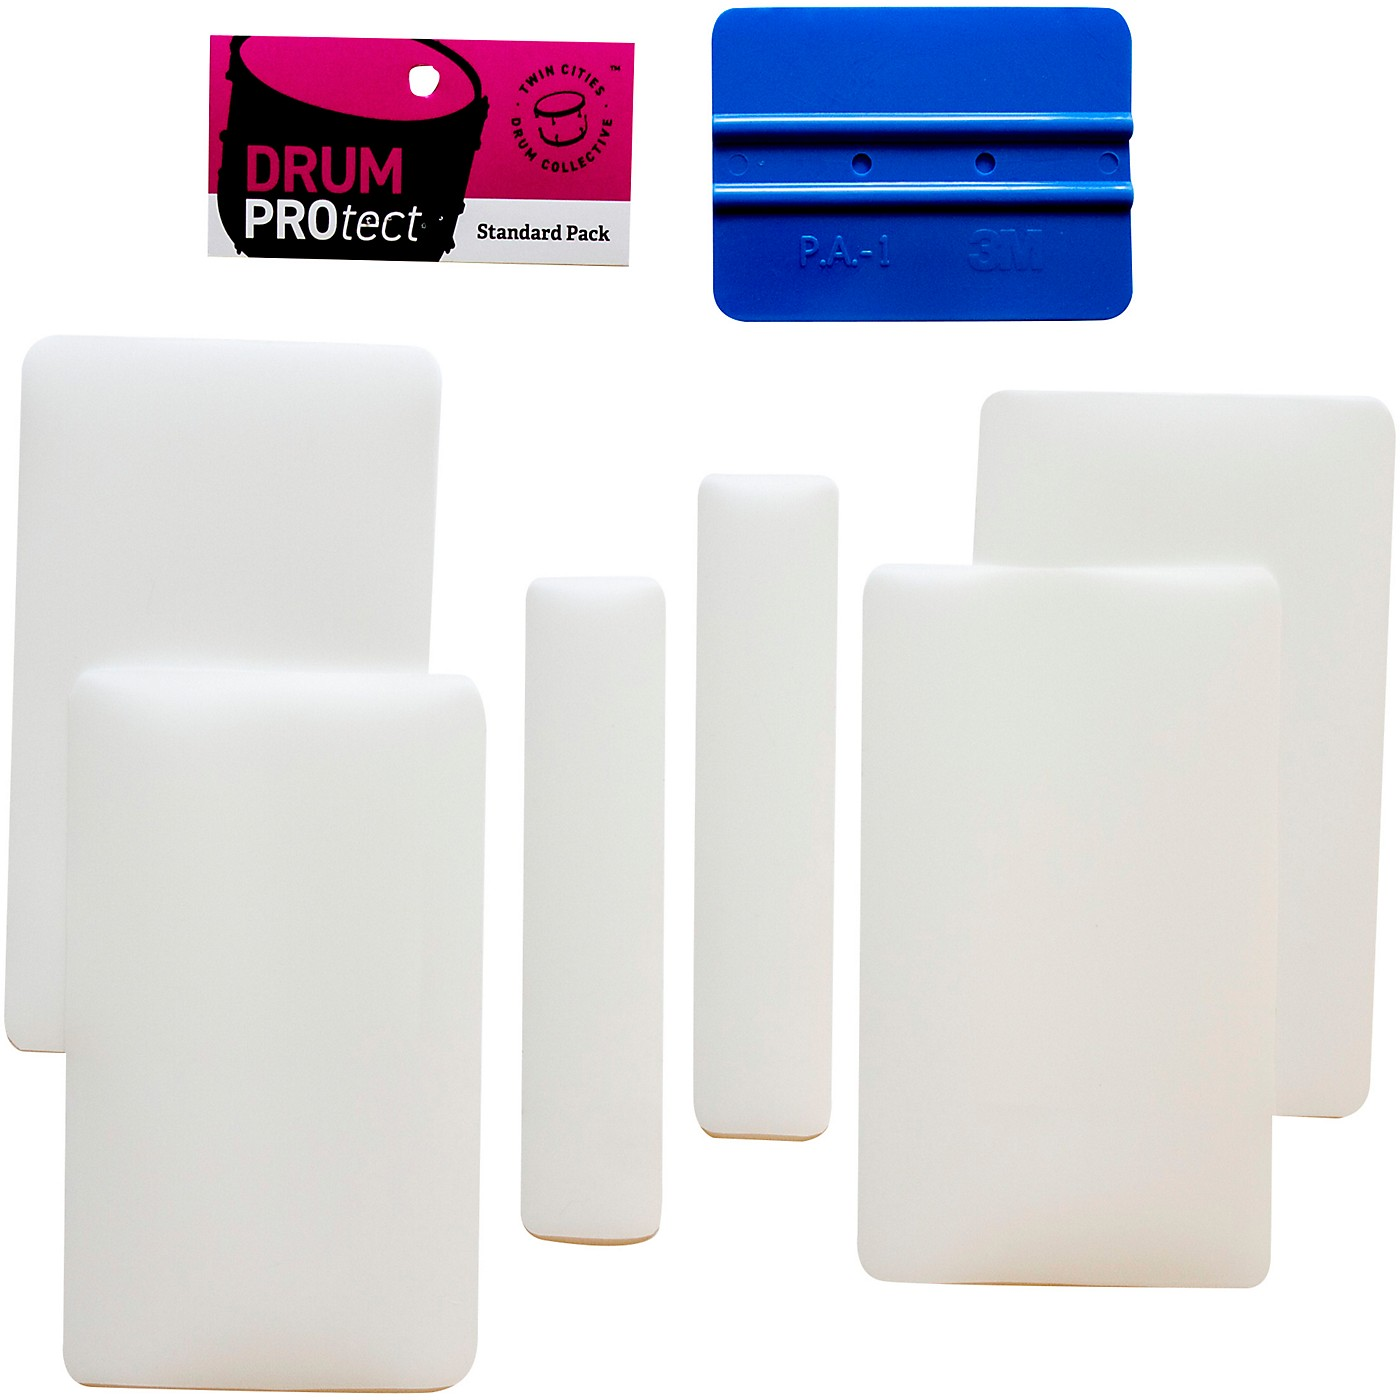 Drum PROtect Standard Pack Protective Film thumbnail